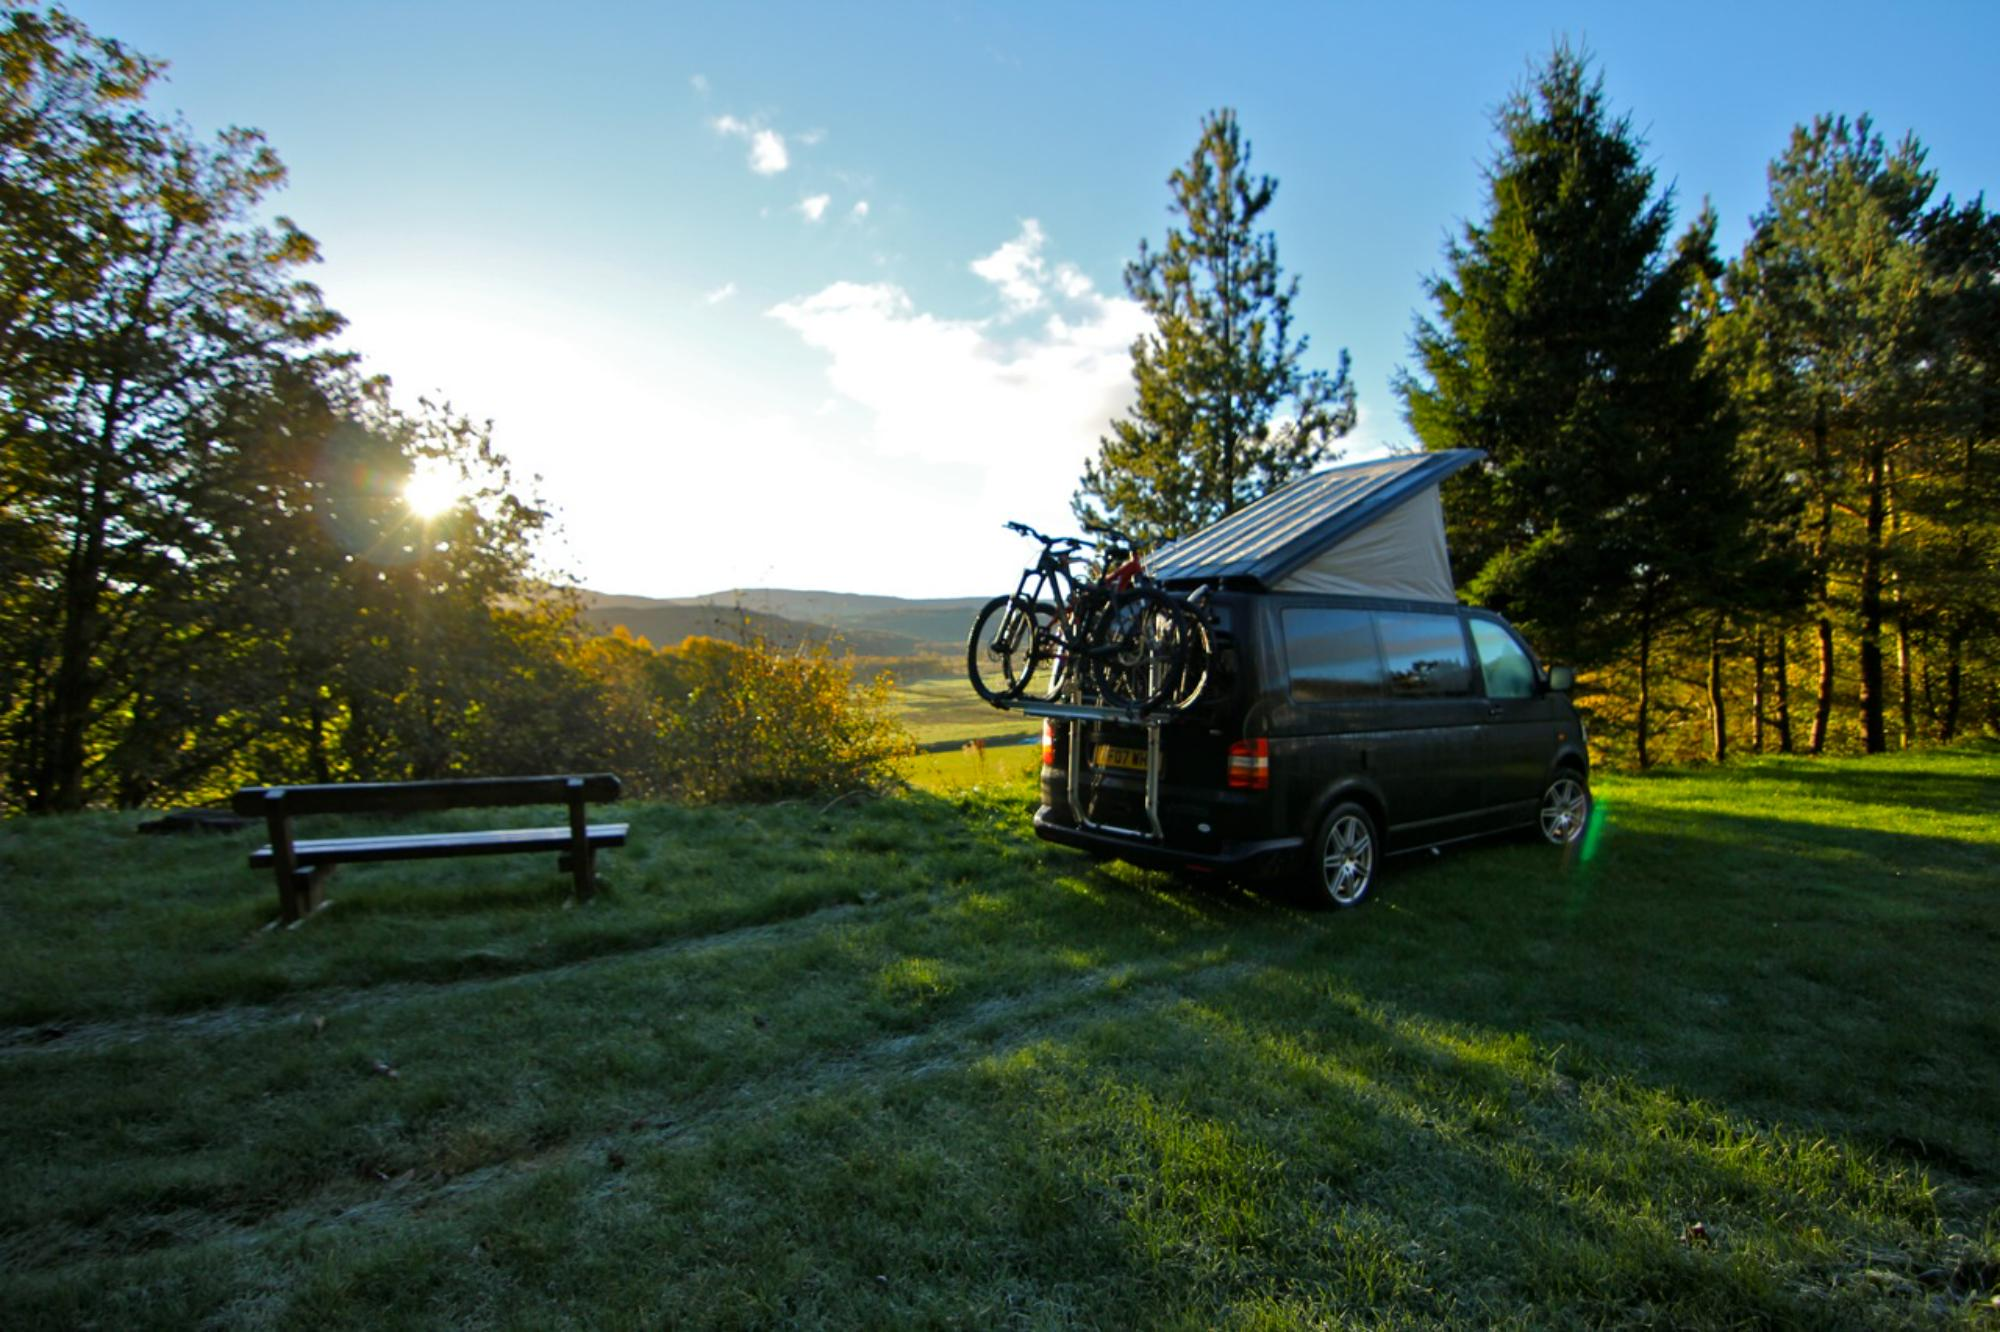 Campervan Hire in Greater Manchester | Motorhome Rental in Greater Manchester, UK